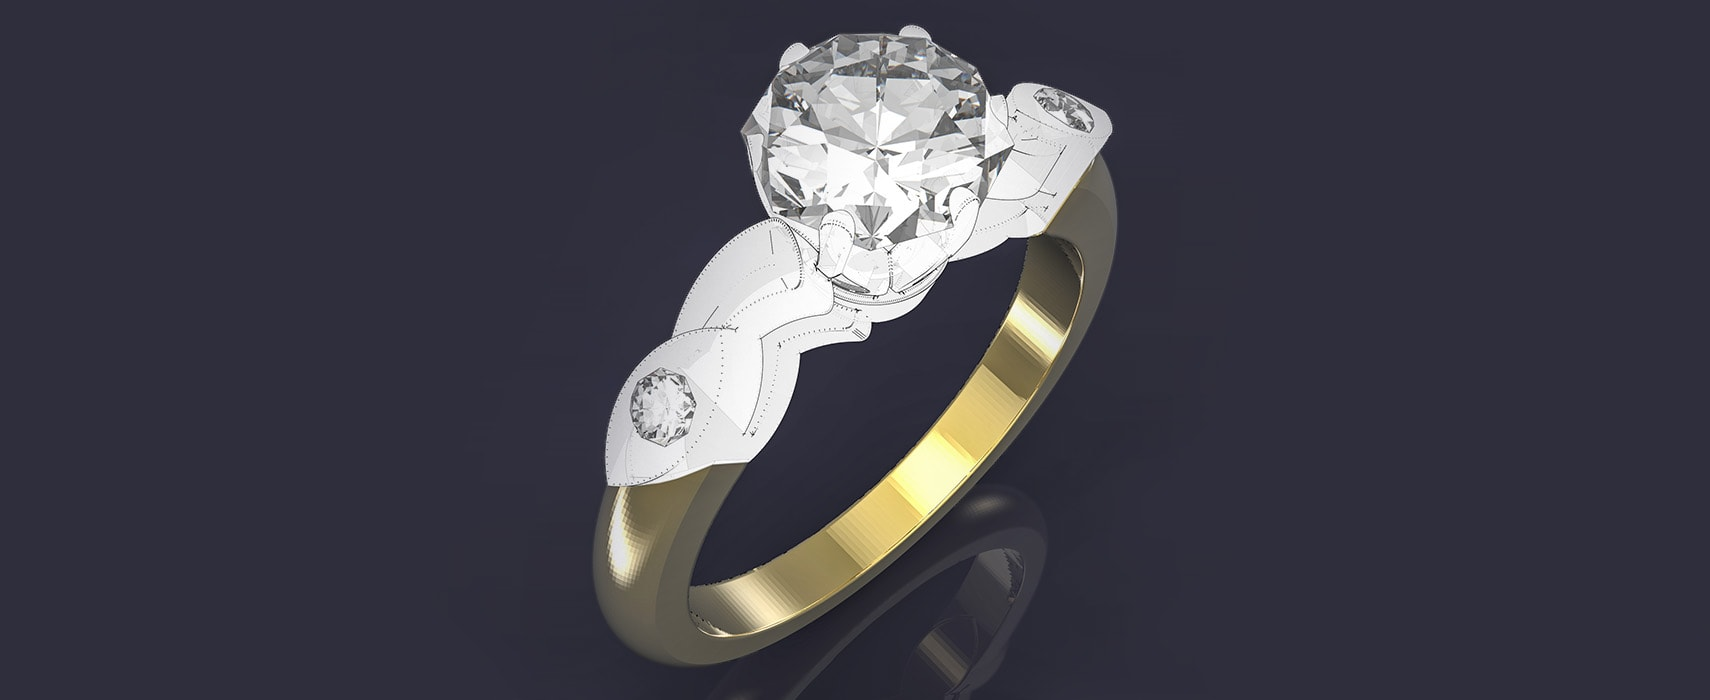 3D CAD model of engagement ring concept